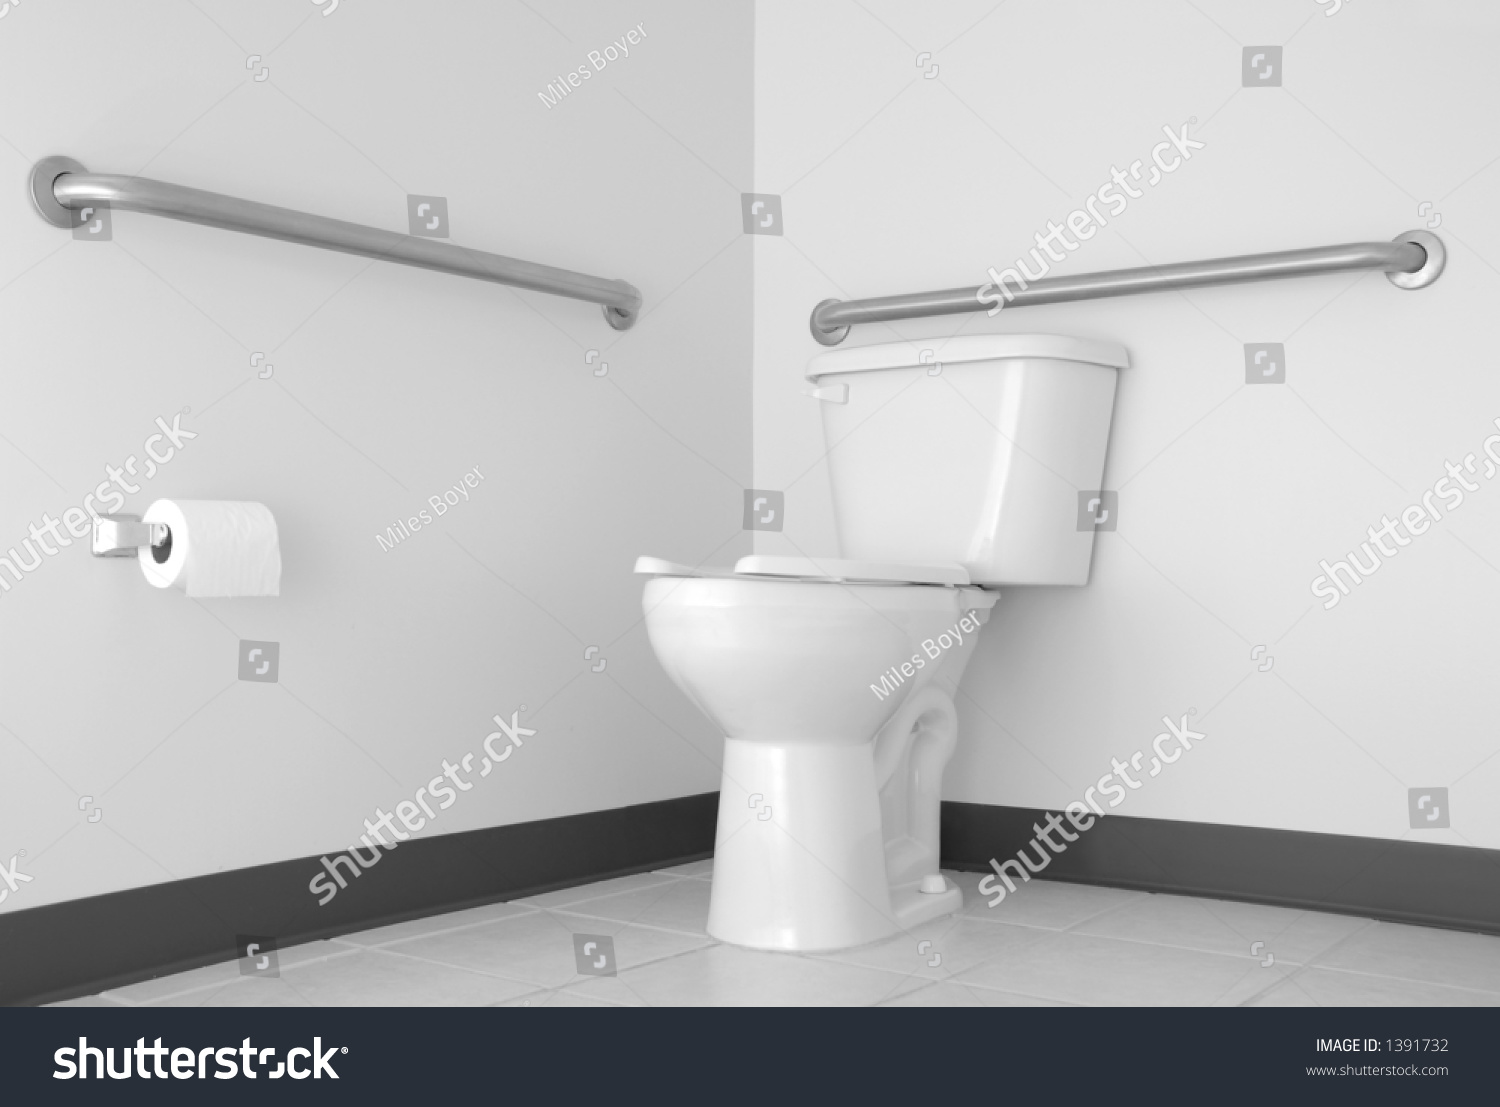 Simple Toilet Bathroom ADA Grab Bars Stock Photo (Safe to Use ...